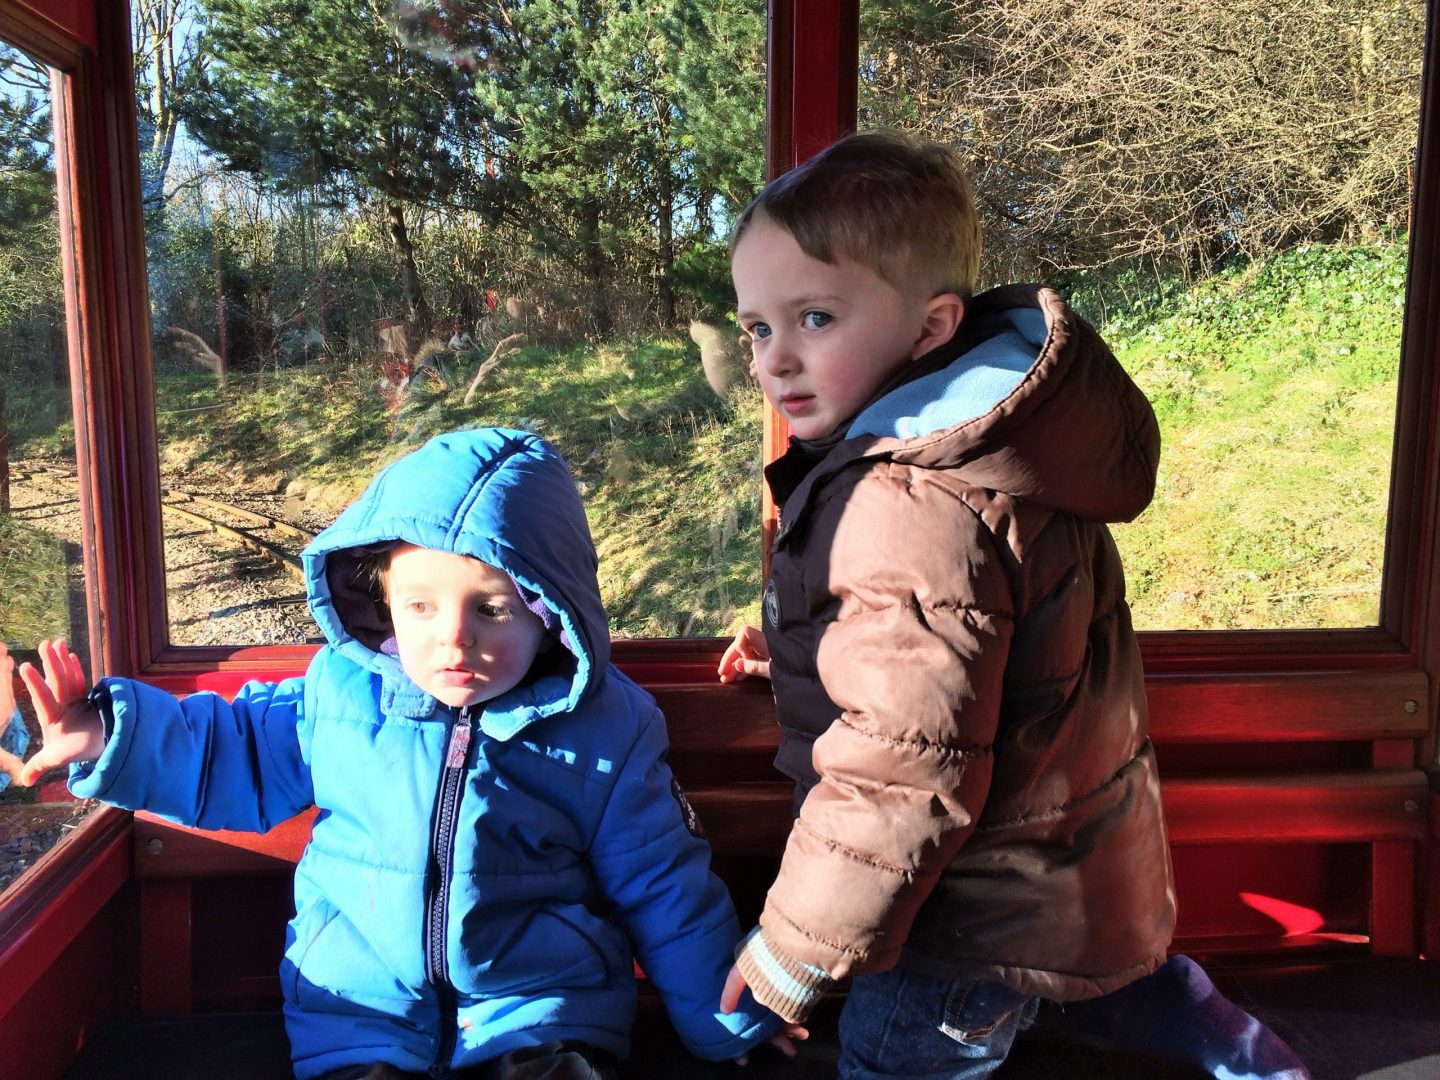 Perrygrove Railway, Forest of Dean holidays, family short break